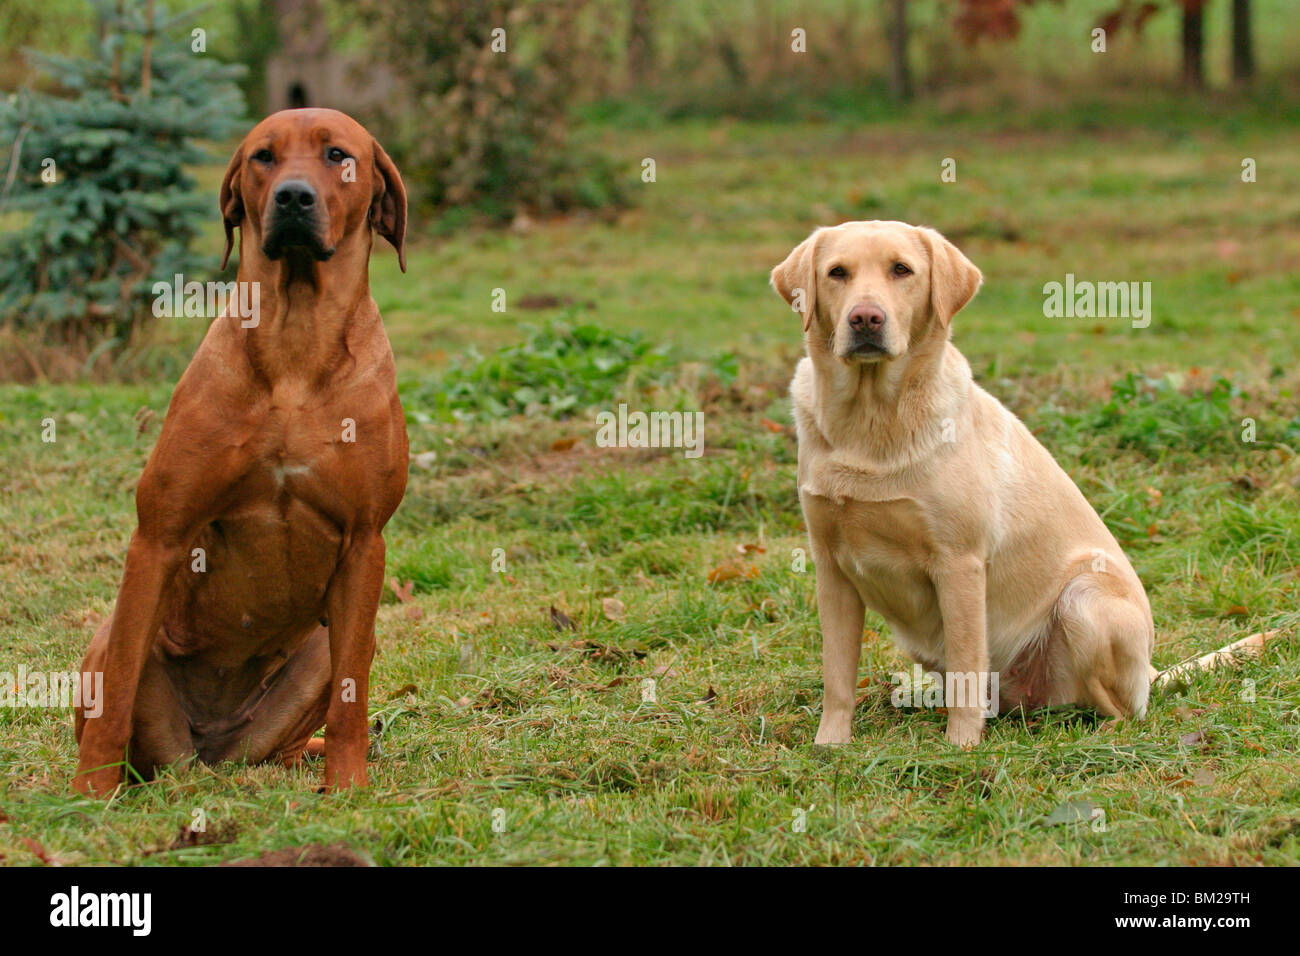 Rhodesian Ridgeback Brown Labrador Retriever Stockfotos Rhodesian